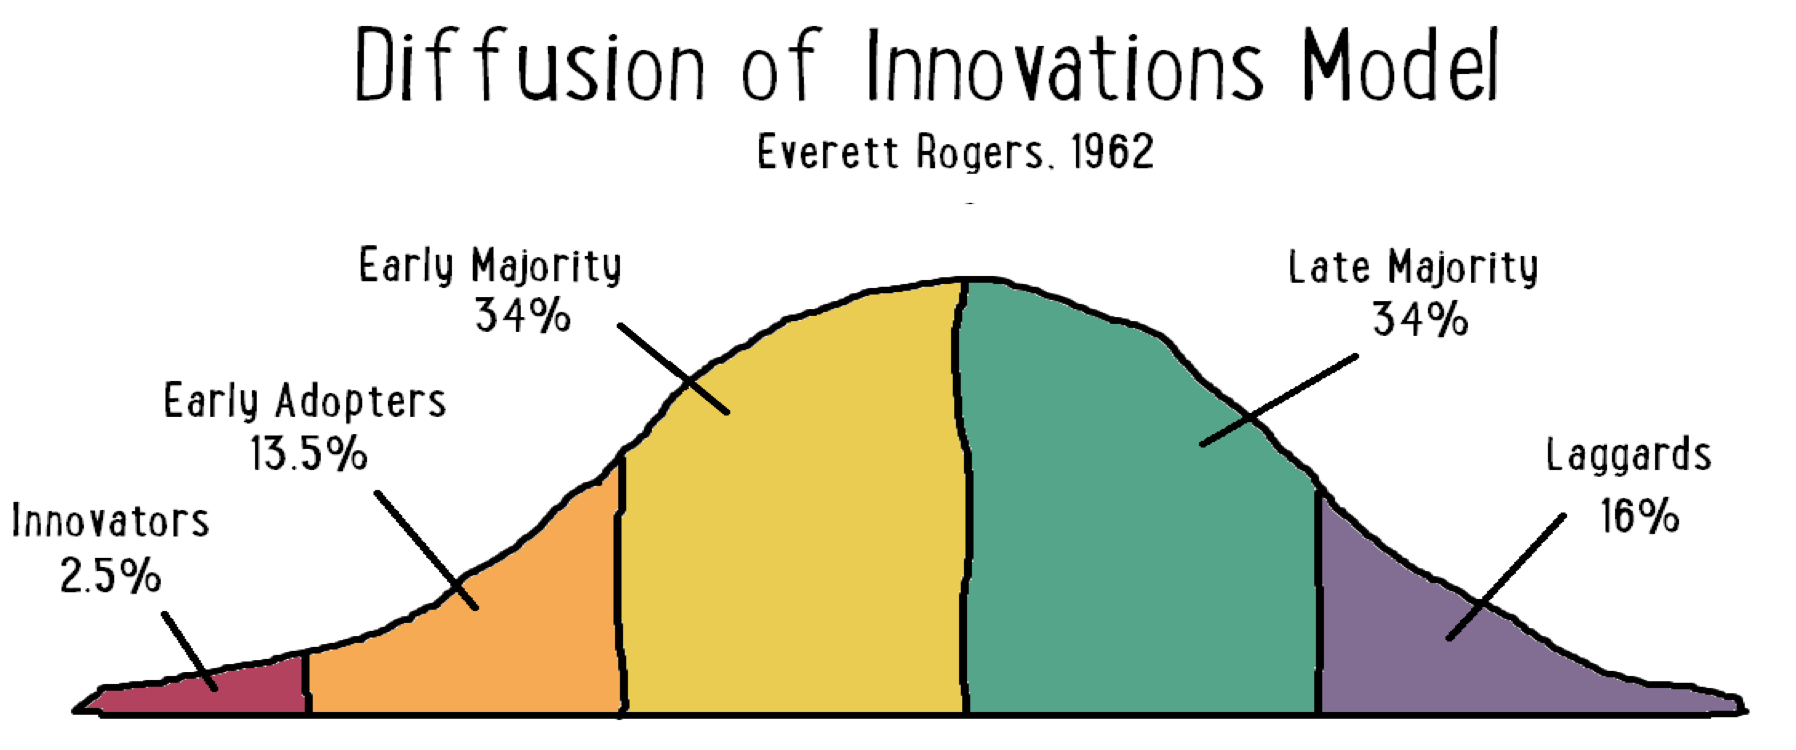 Diffusin of innovations model Innovators early adopters early majority late majority laggards